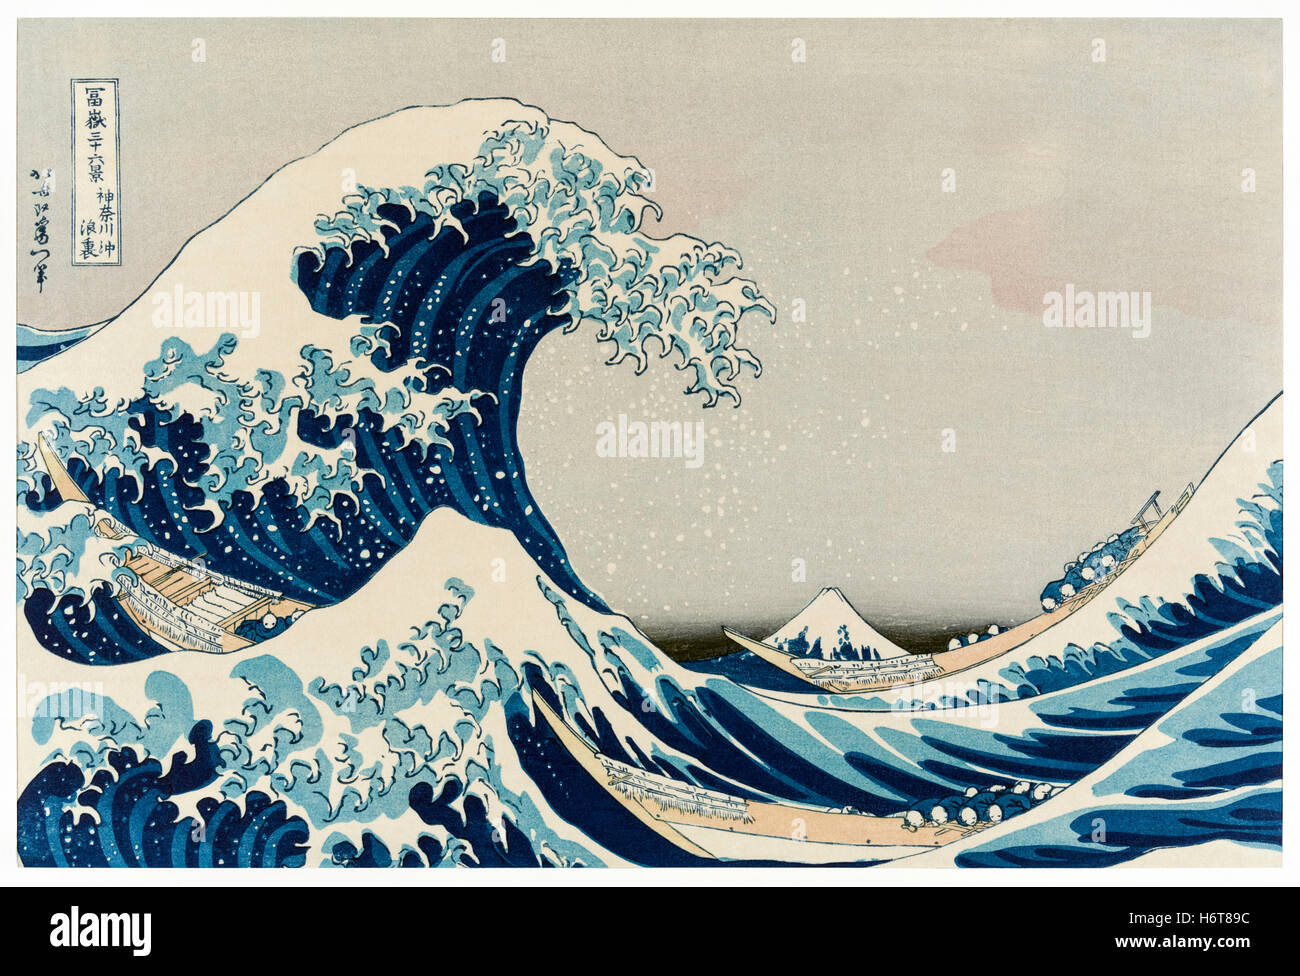 'The Great Wave off Kanagawa' wood block print by Katsushika Hokusai (1760-1849) a Japanese artist in the Edo period, - Stock Image